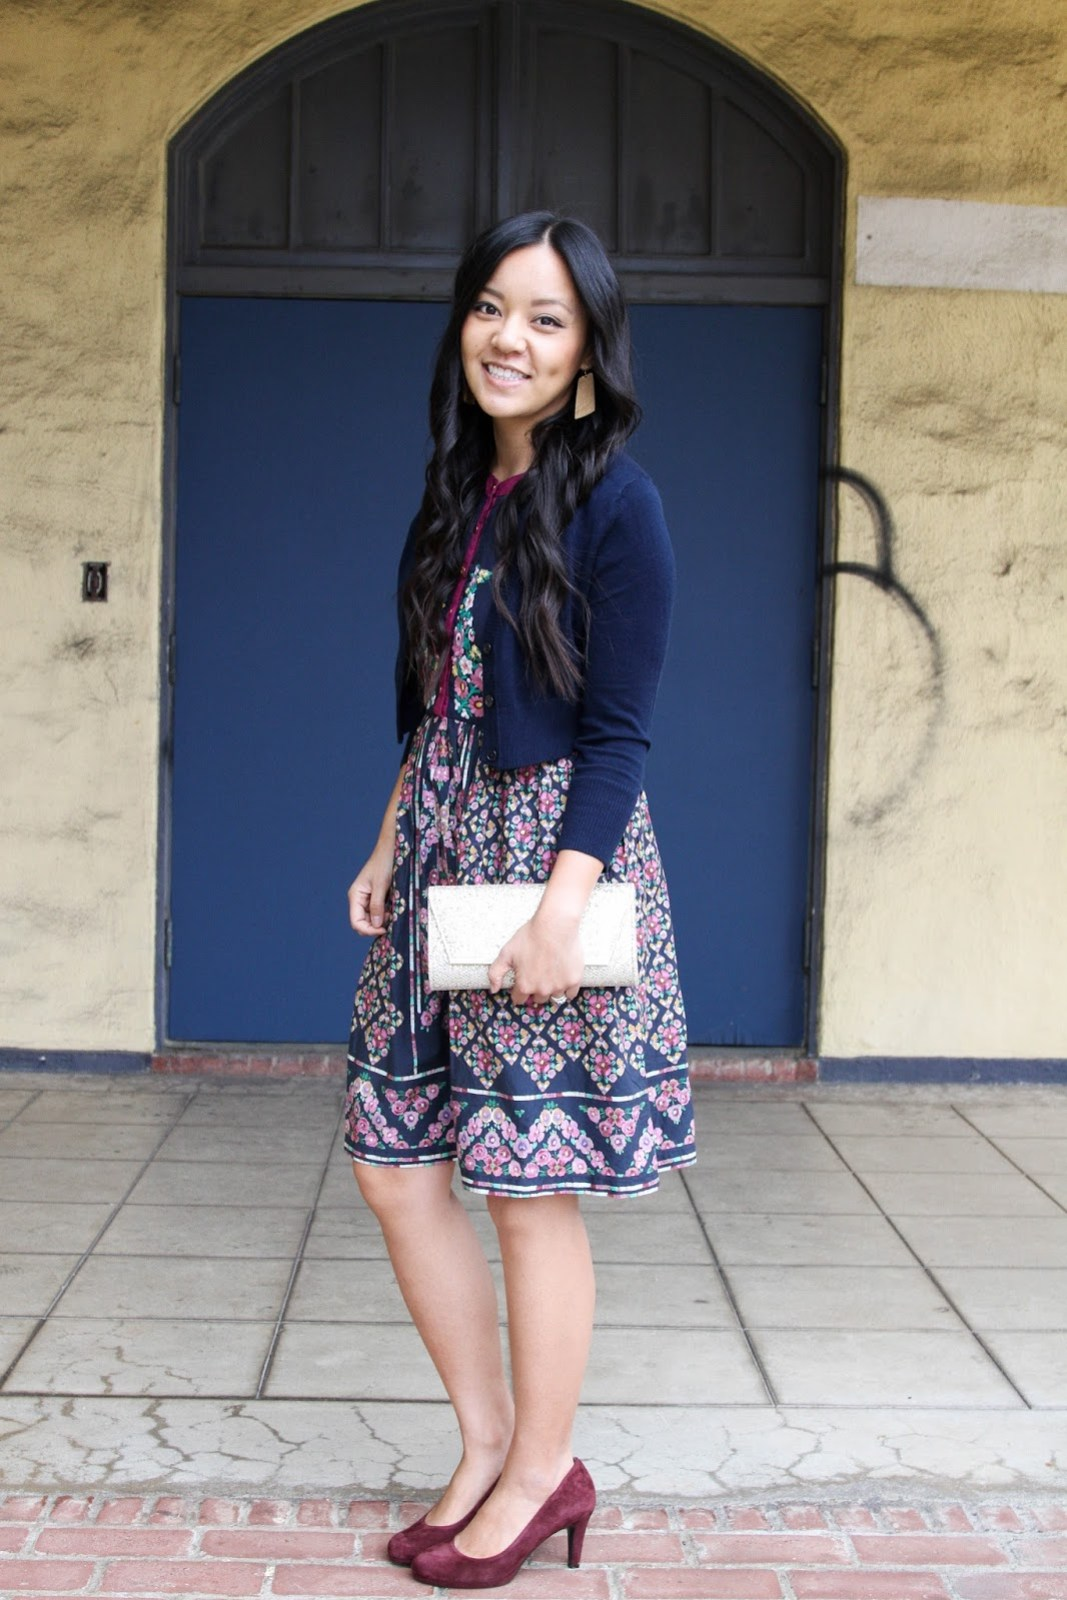 Gold Earrings + Navy Cardigan + Navy Floral Dress + Maroon Pumps + Gold Clutch